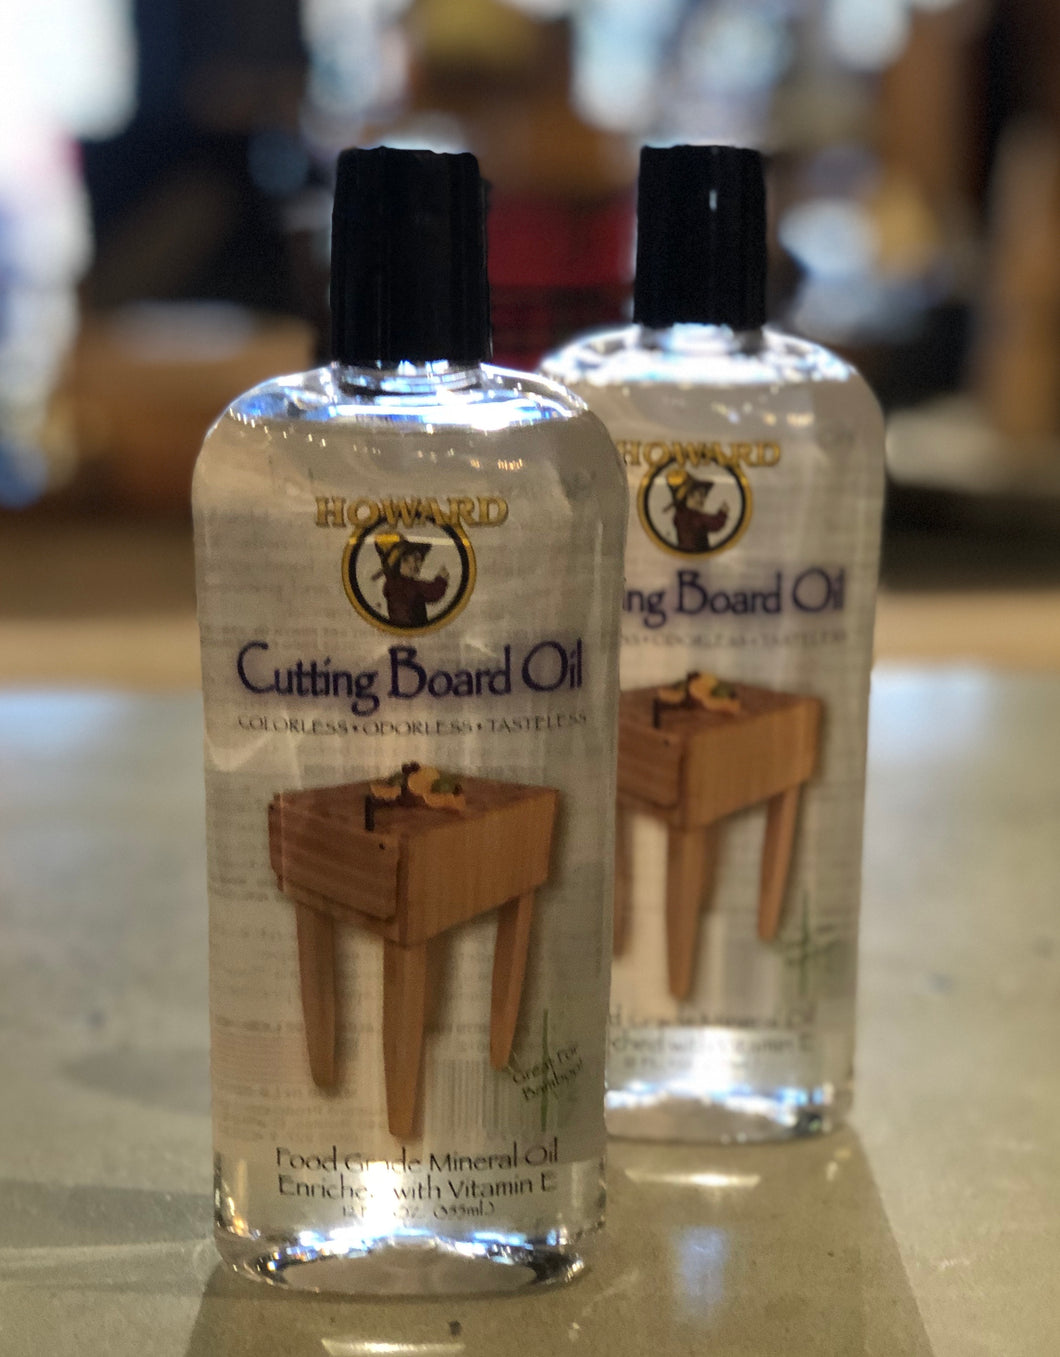 Oil for cutting boards